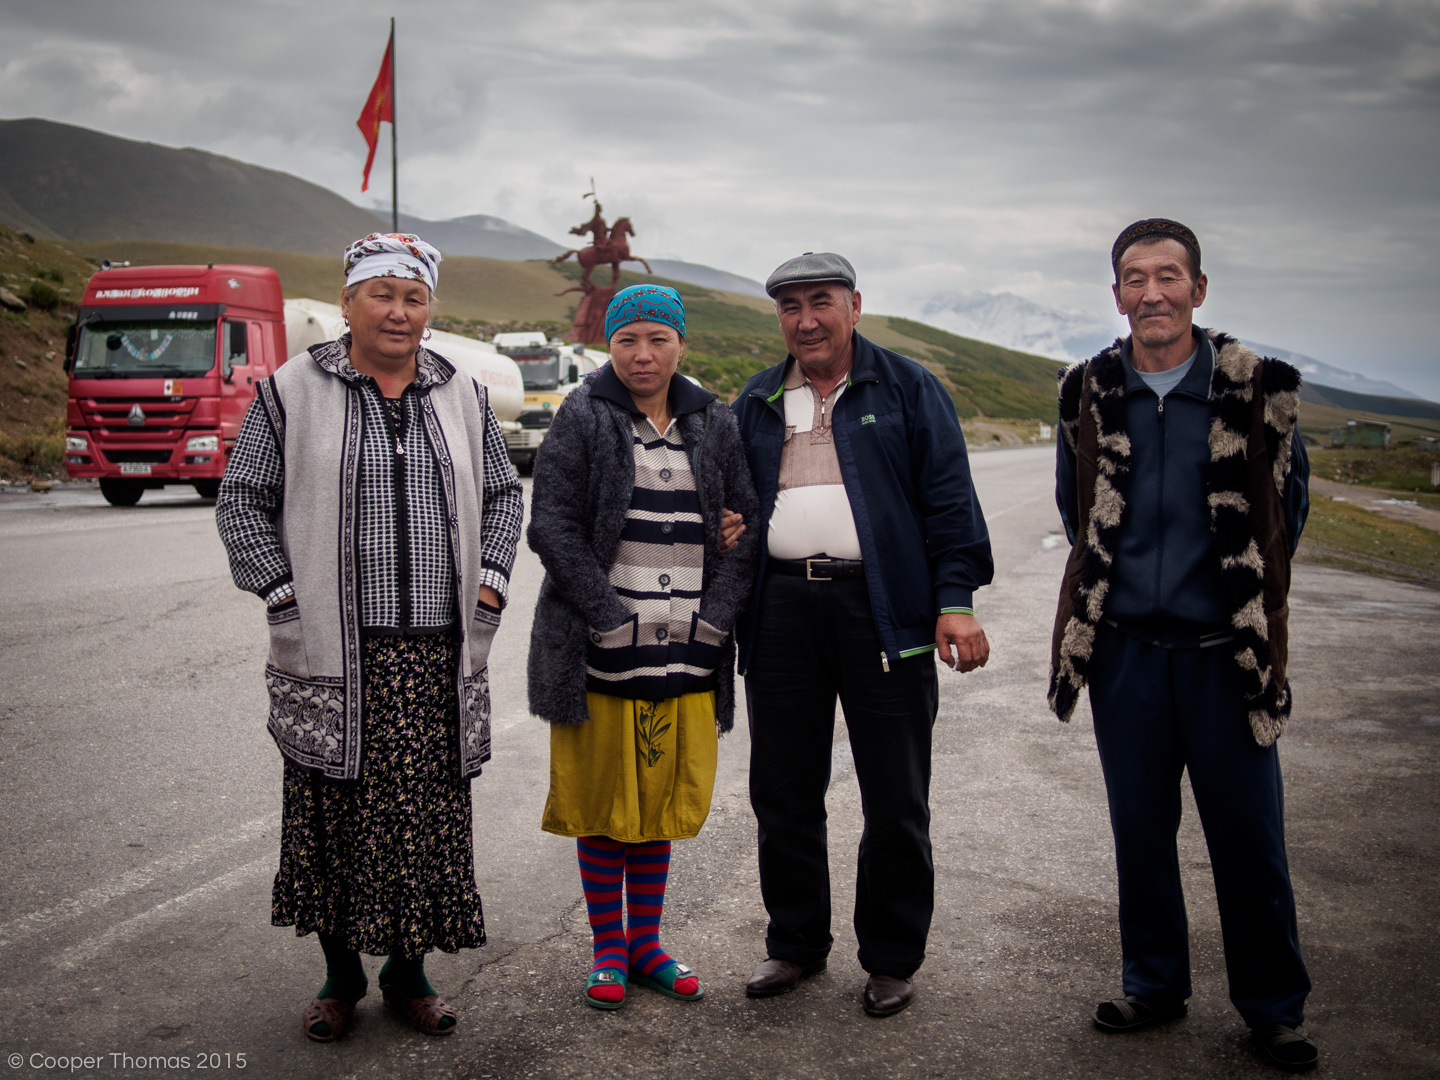 Locals pose near a Manas Statue, which marks the M41's junction with the main road to Talas Oblast